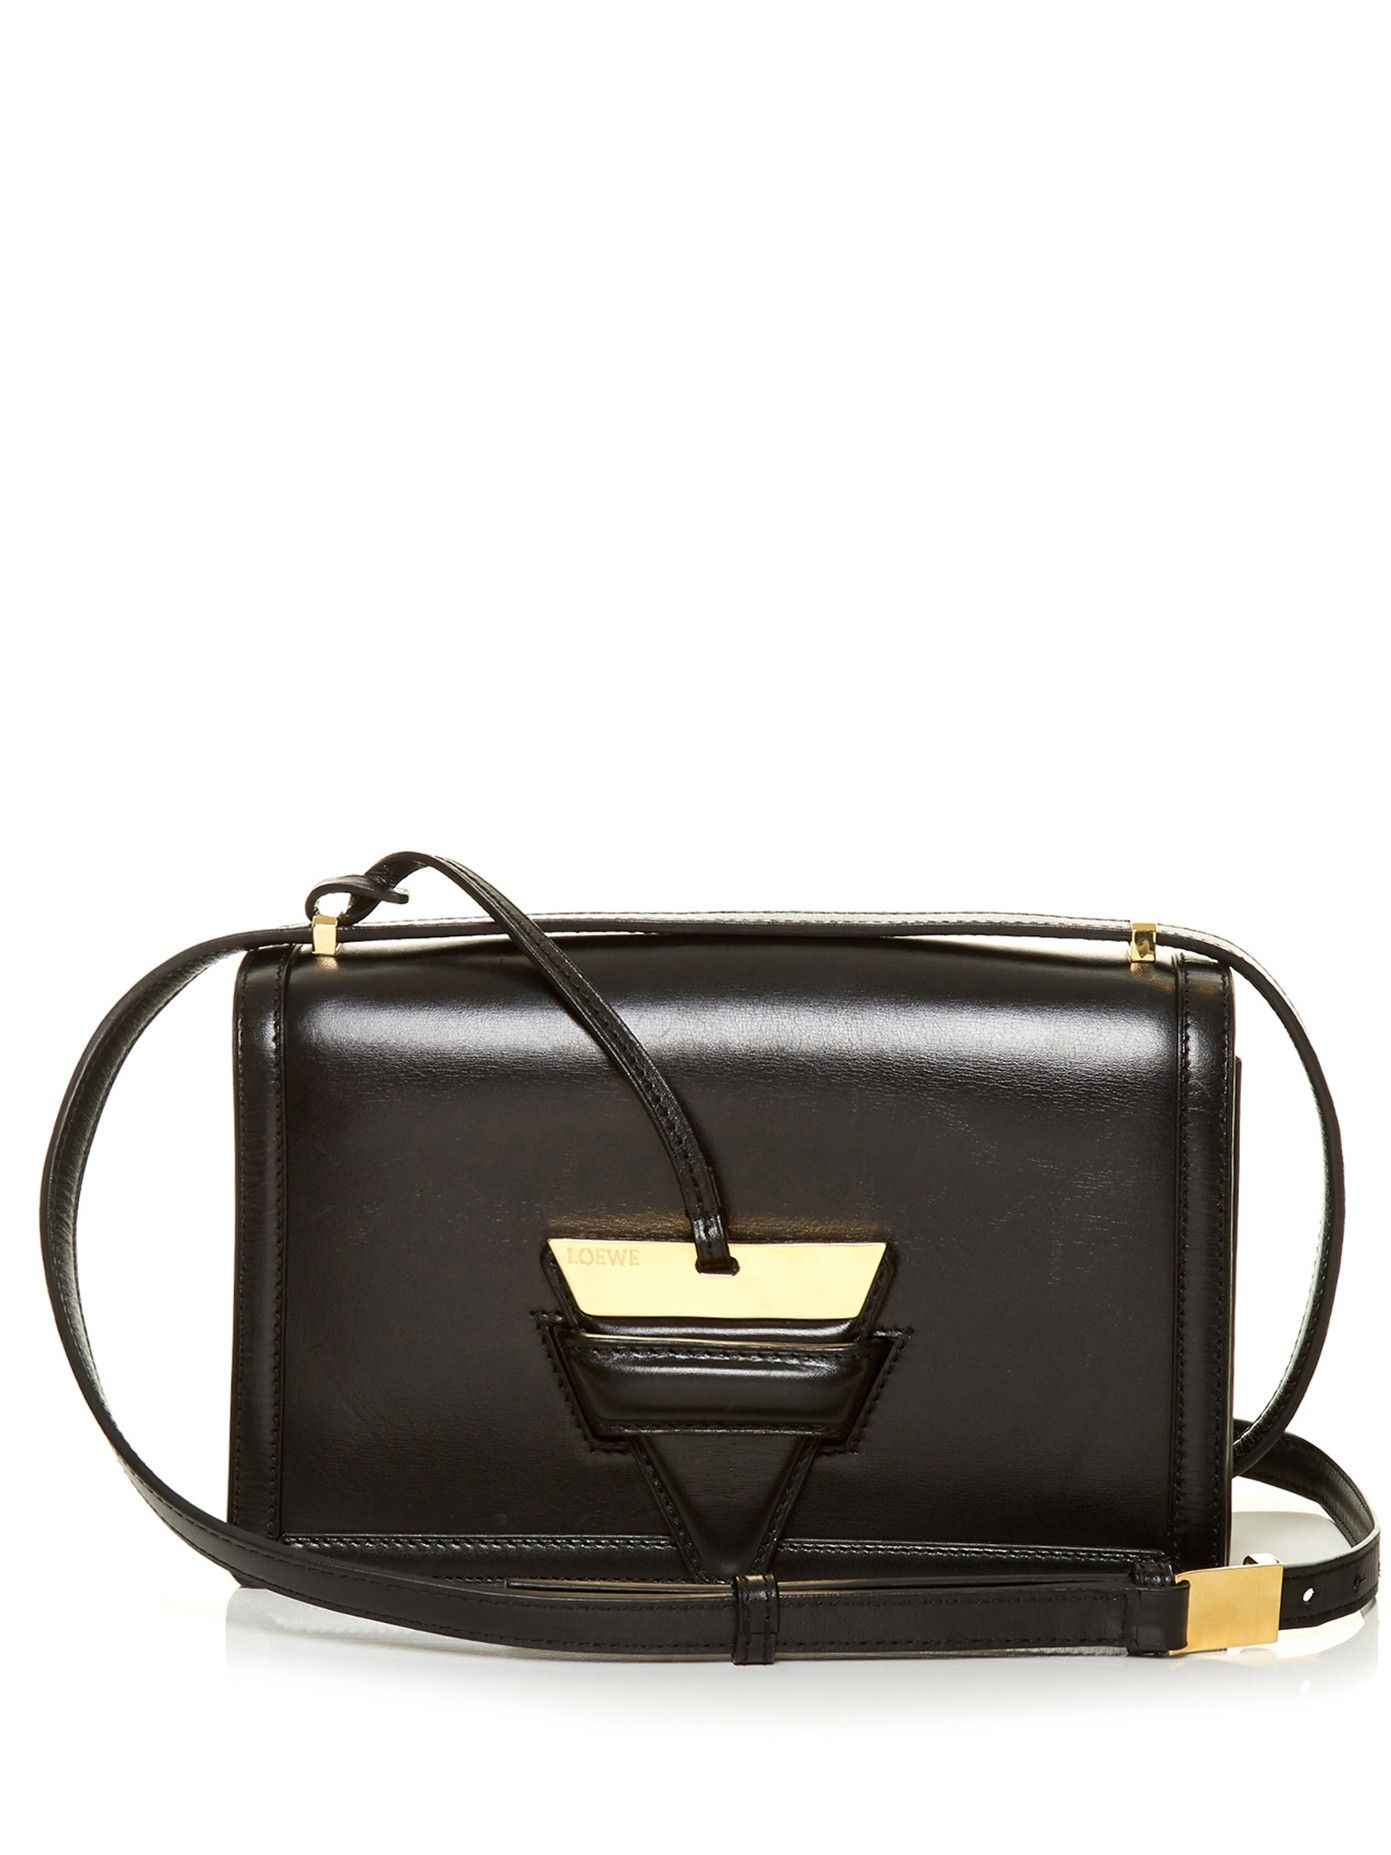 Loewe's Barcelona bag is defined by the gold-tone accented ...